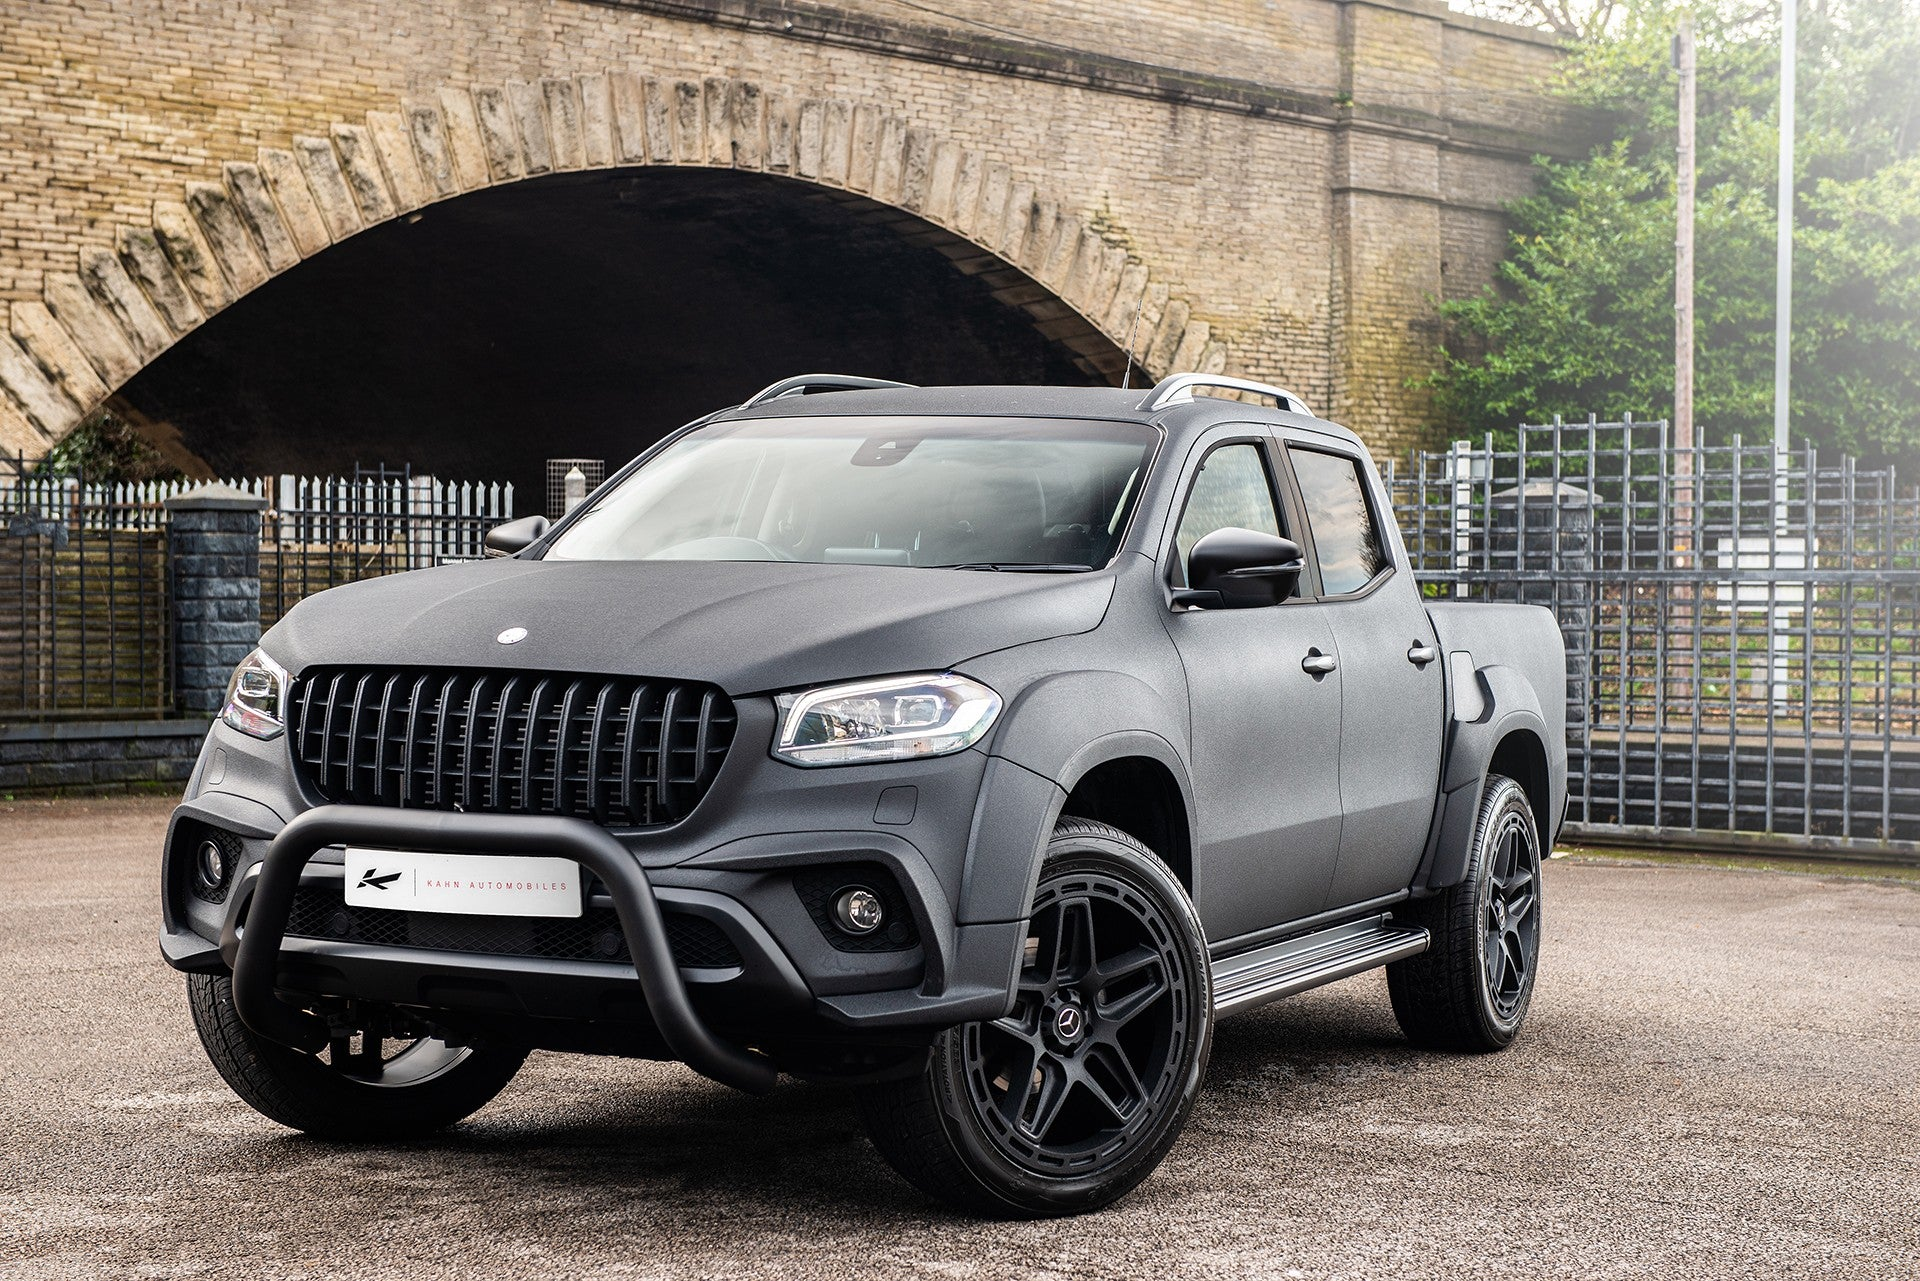 PROJECT KAHN 'ARMY CHIC' MERCEDES-BENZ X CLASS 01